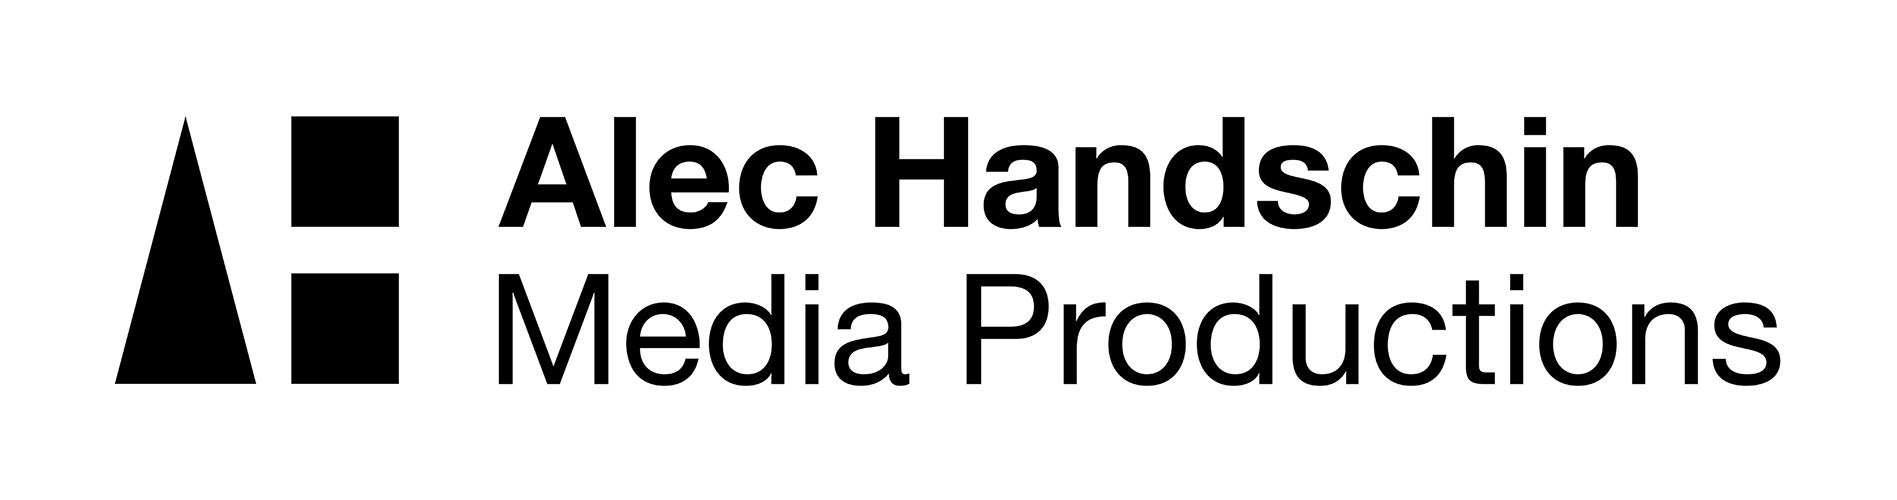 Alec Handschin Media Productions